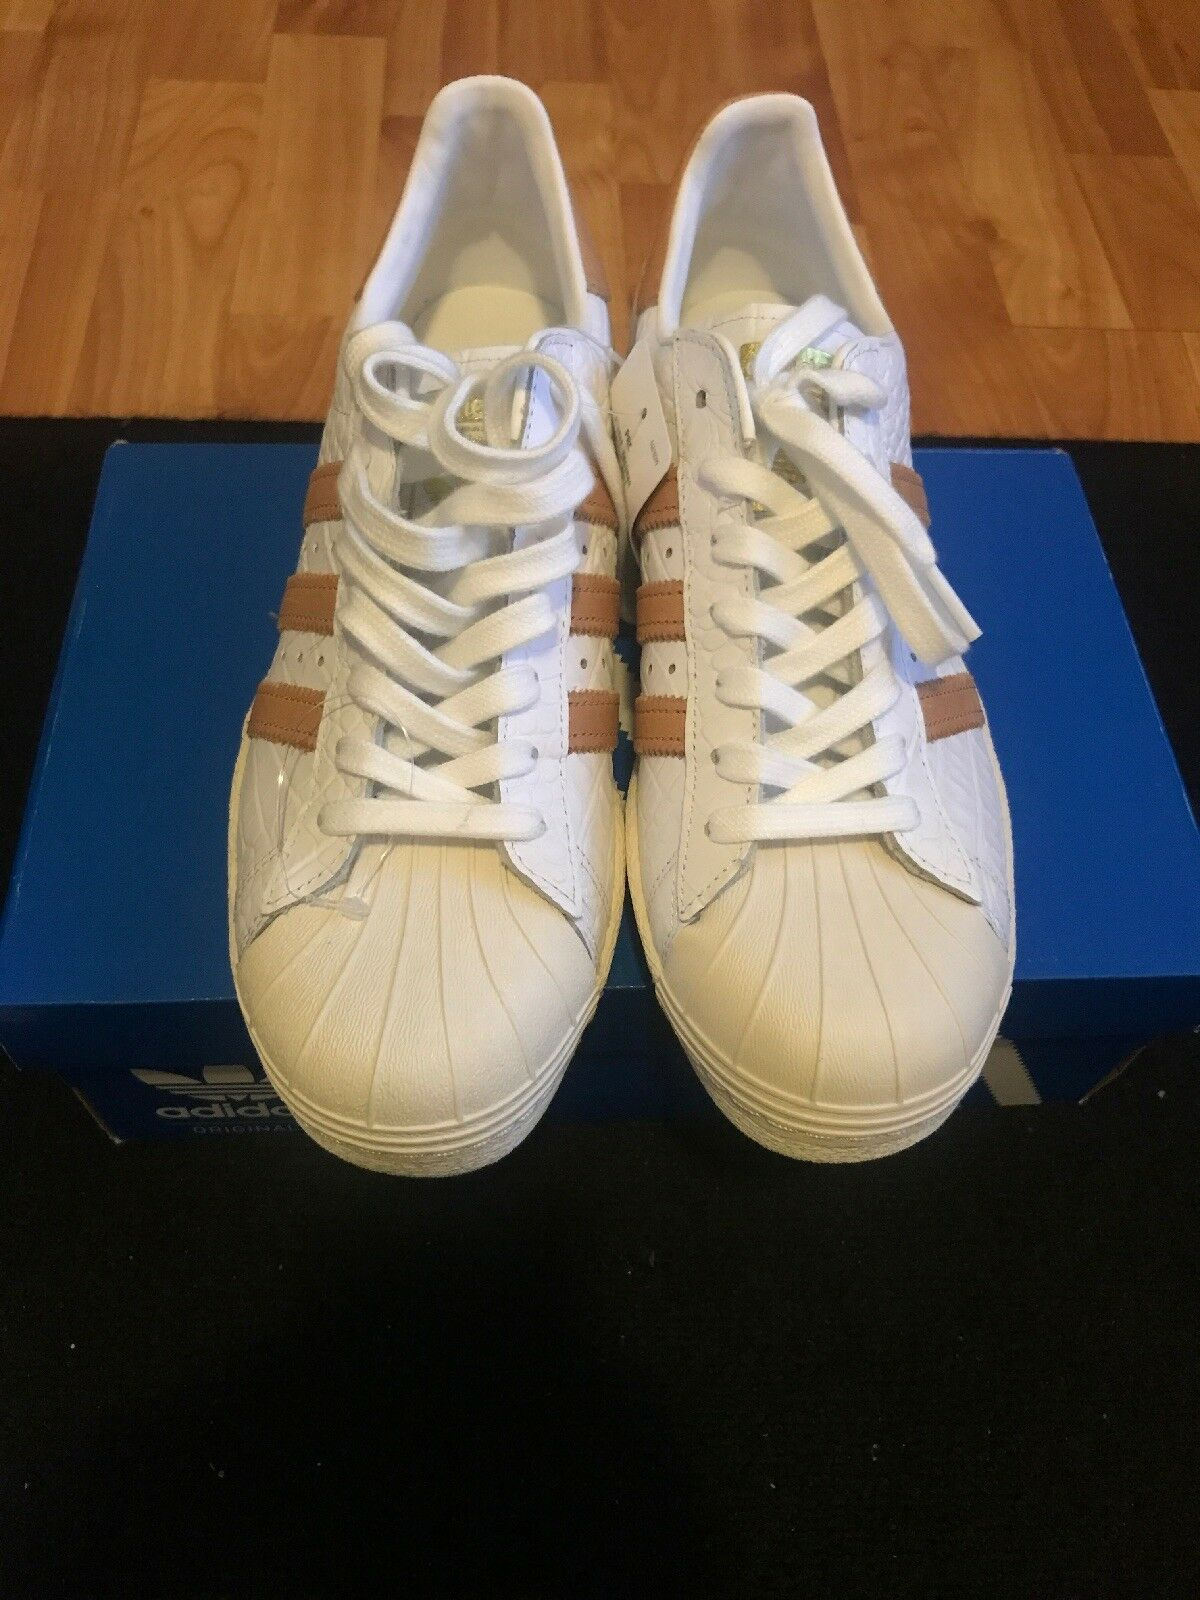 Adidas Superstar 80s Shelltoes Men's Shoes Size 9 Off-White